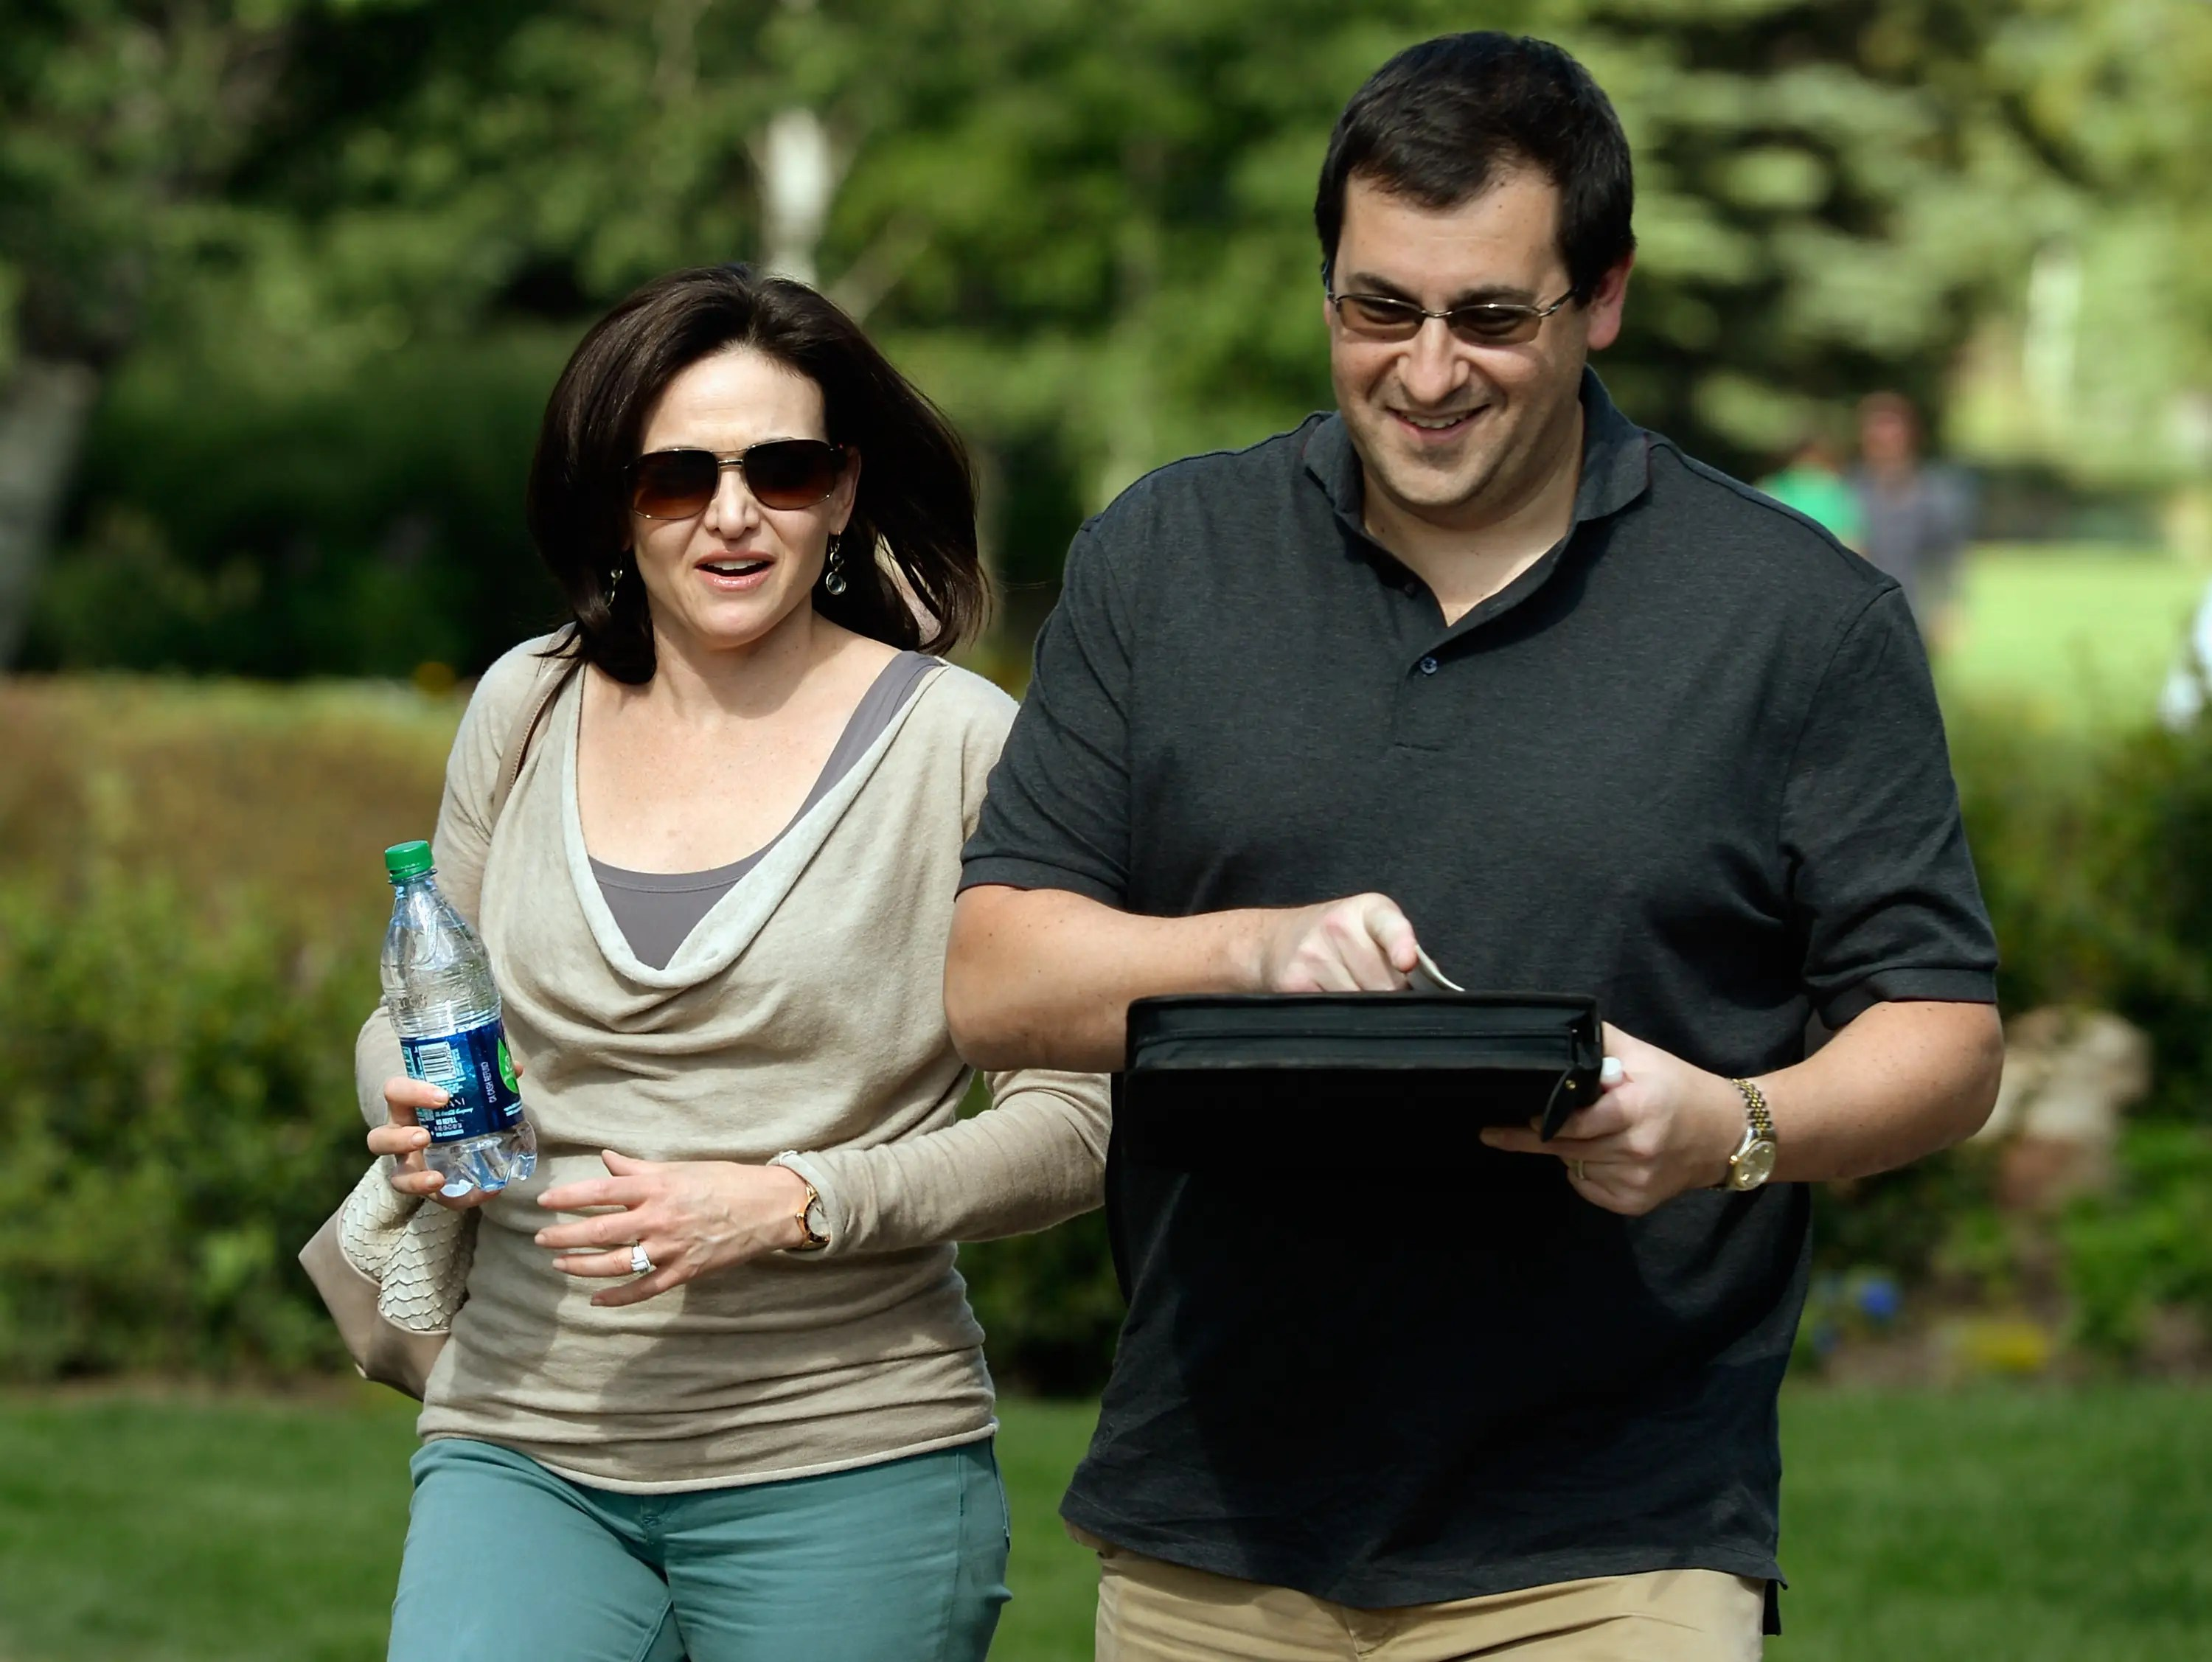 And here's Sandberg with her hubby, Dave Goldberg, CEO of SurveyMonkey.